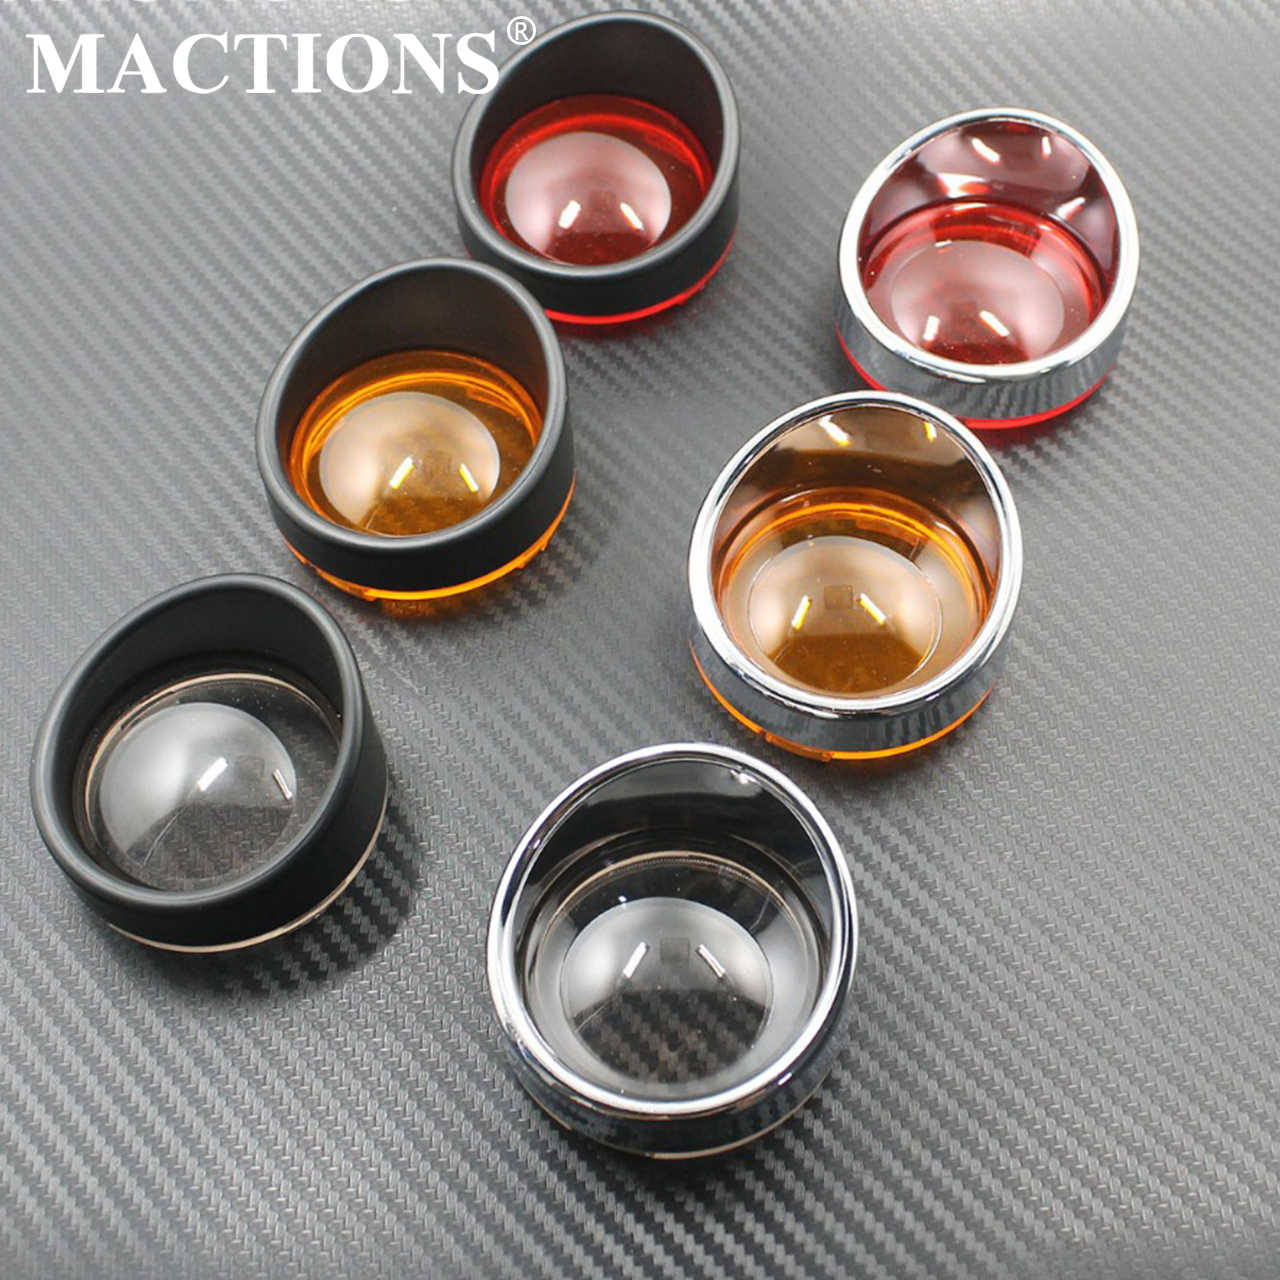 Mactions Vizier-Stijl Richtingaanwijzer Blinker Bezels Indicator Trim Ring W/Lens Voor Harley Touring FLHX Sportster softail Dyna